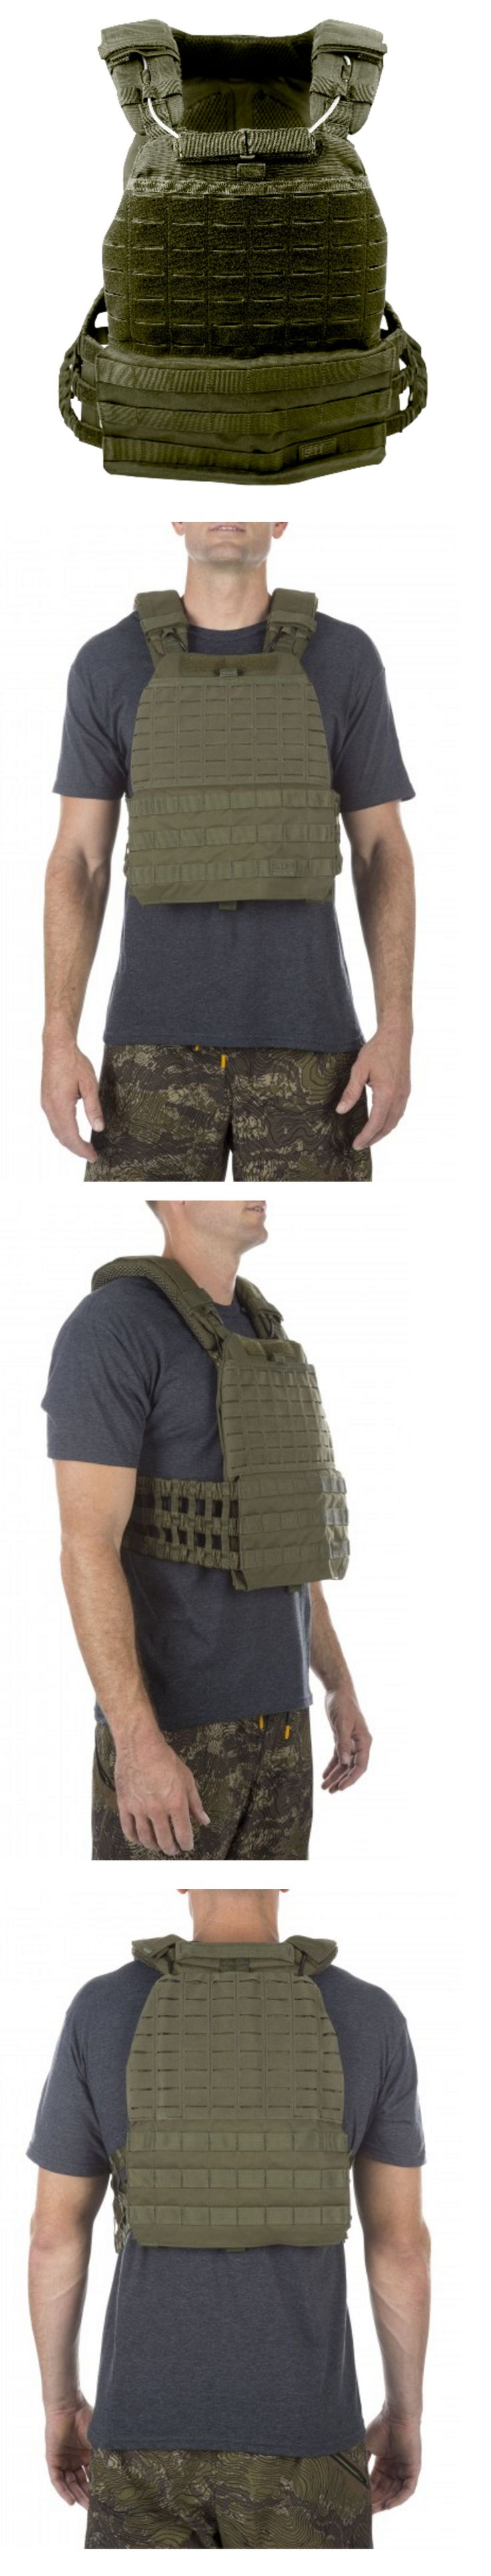 Chest Rigs and Tactical Vests 177891: 5.11 Tactical Tactec™ Plate Carrier Tac Od Crossfit Airsoft Swat Police Vest -> BUY IT NOW ONLY: $180.49 on eBay!